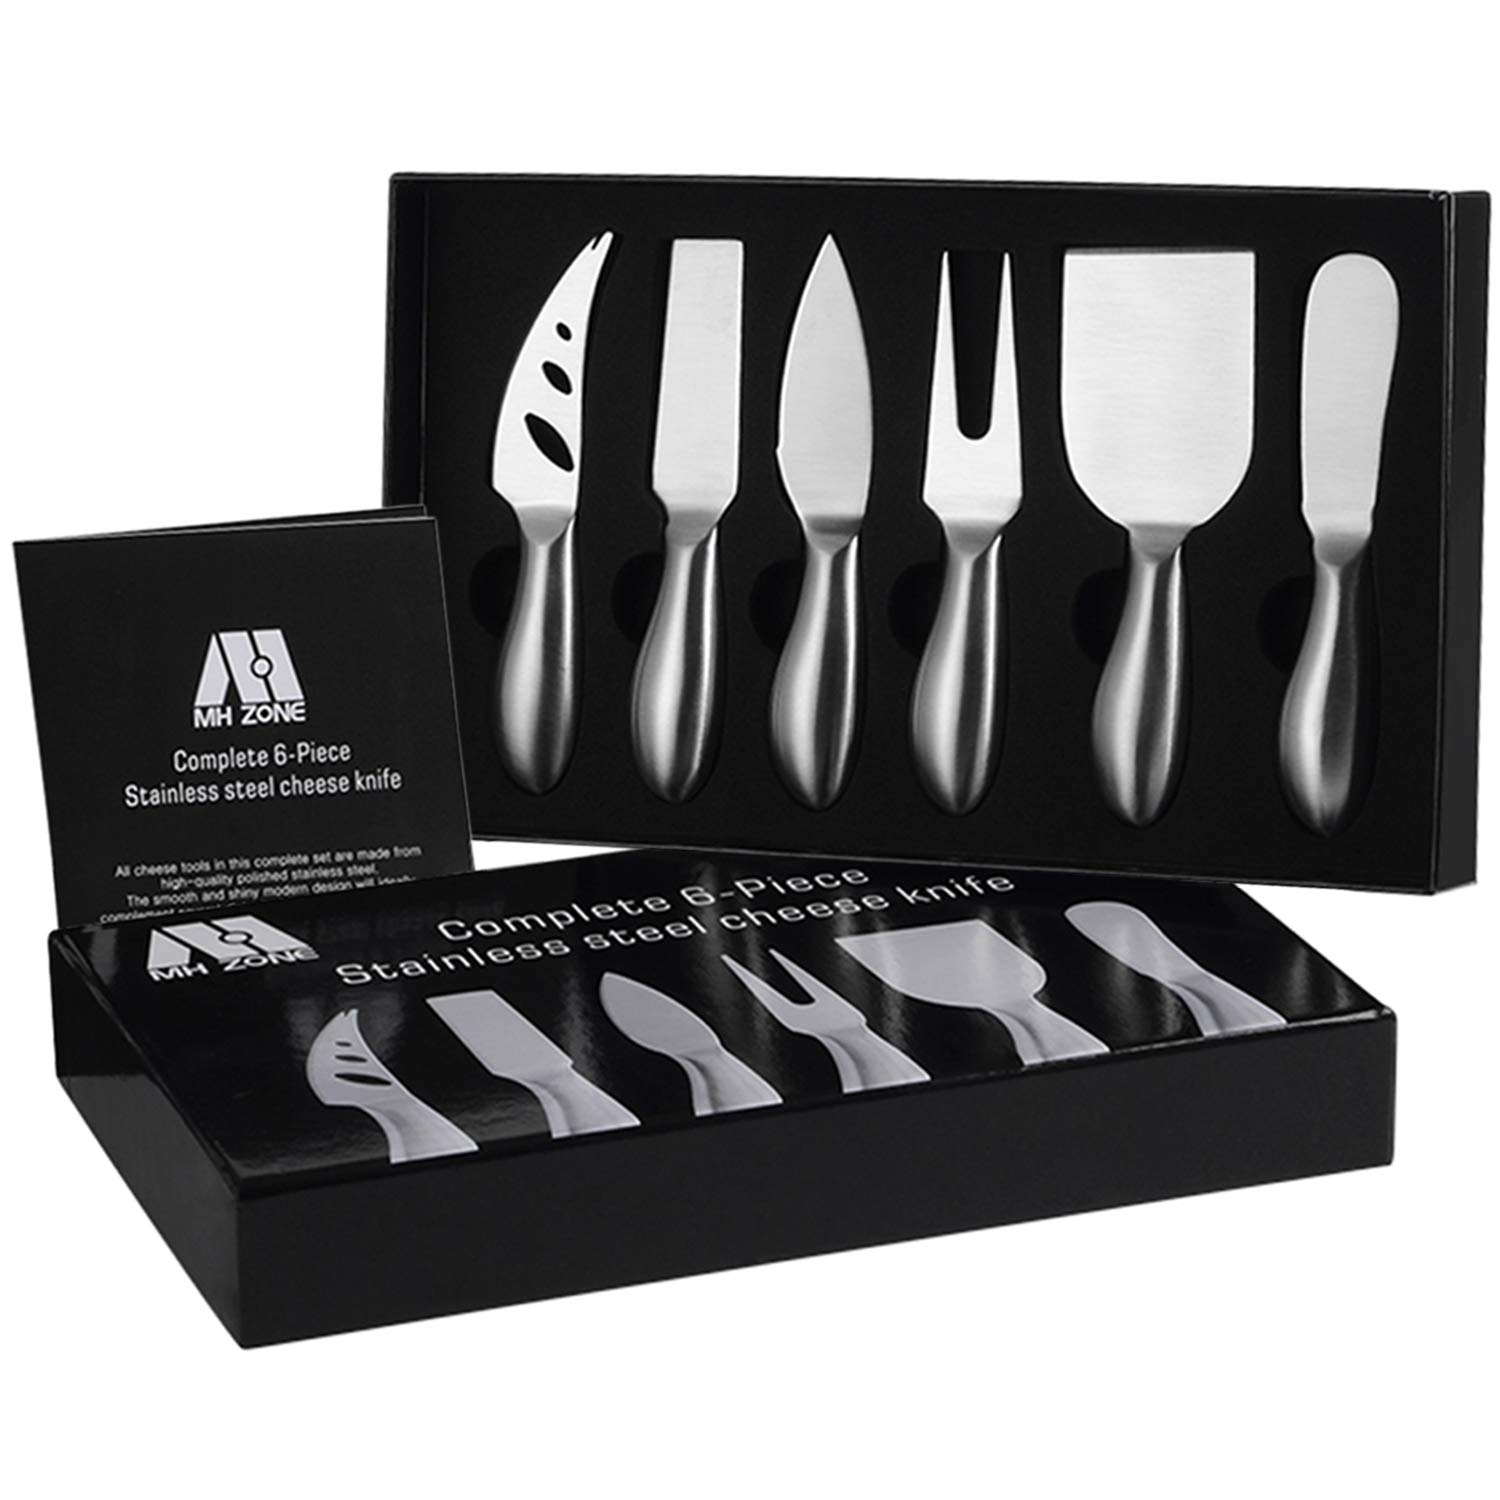 Premium 6-Piece Cheese Knife Set - MH ZONE Complete Stainless Steel Cheese Knives Gift Knives Sets Collection, Suit for the Wedding, Lover, Elders, Children and Friends, Perfect Christmas Gifts by M MH ZONE